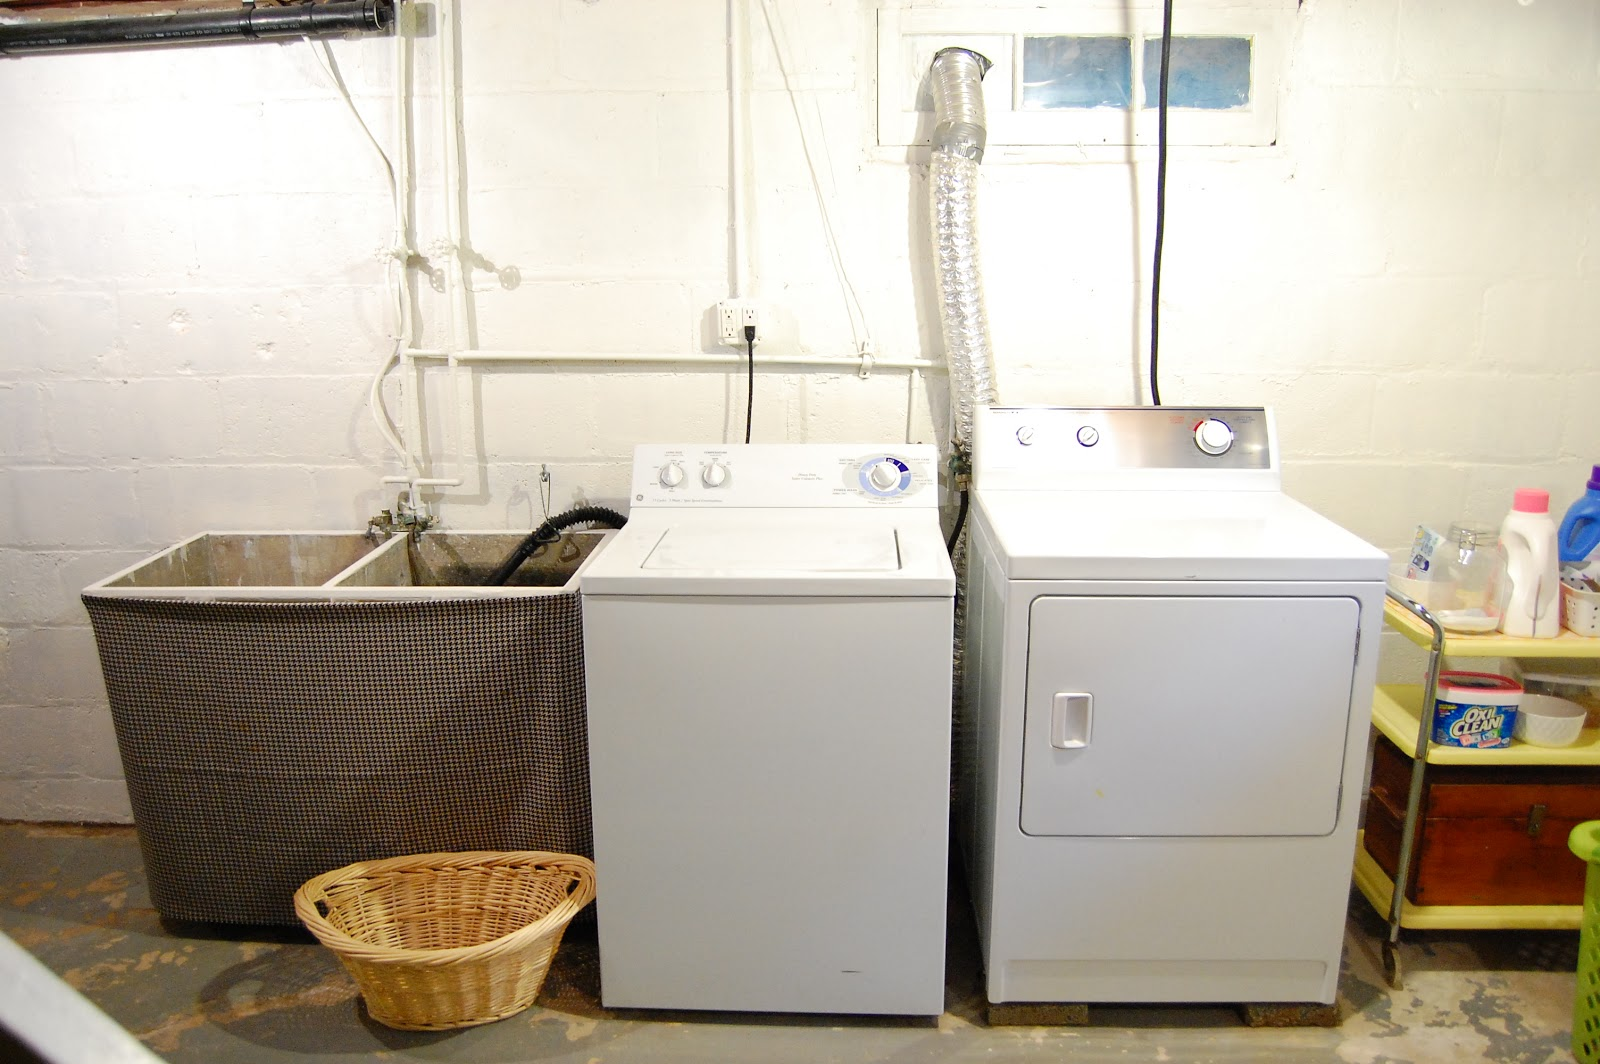 Basement Laundry Room Before And After As you can see from this  old